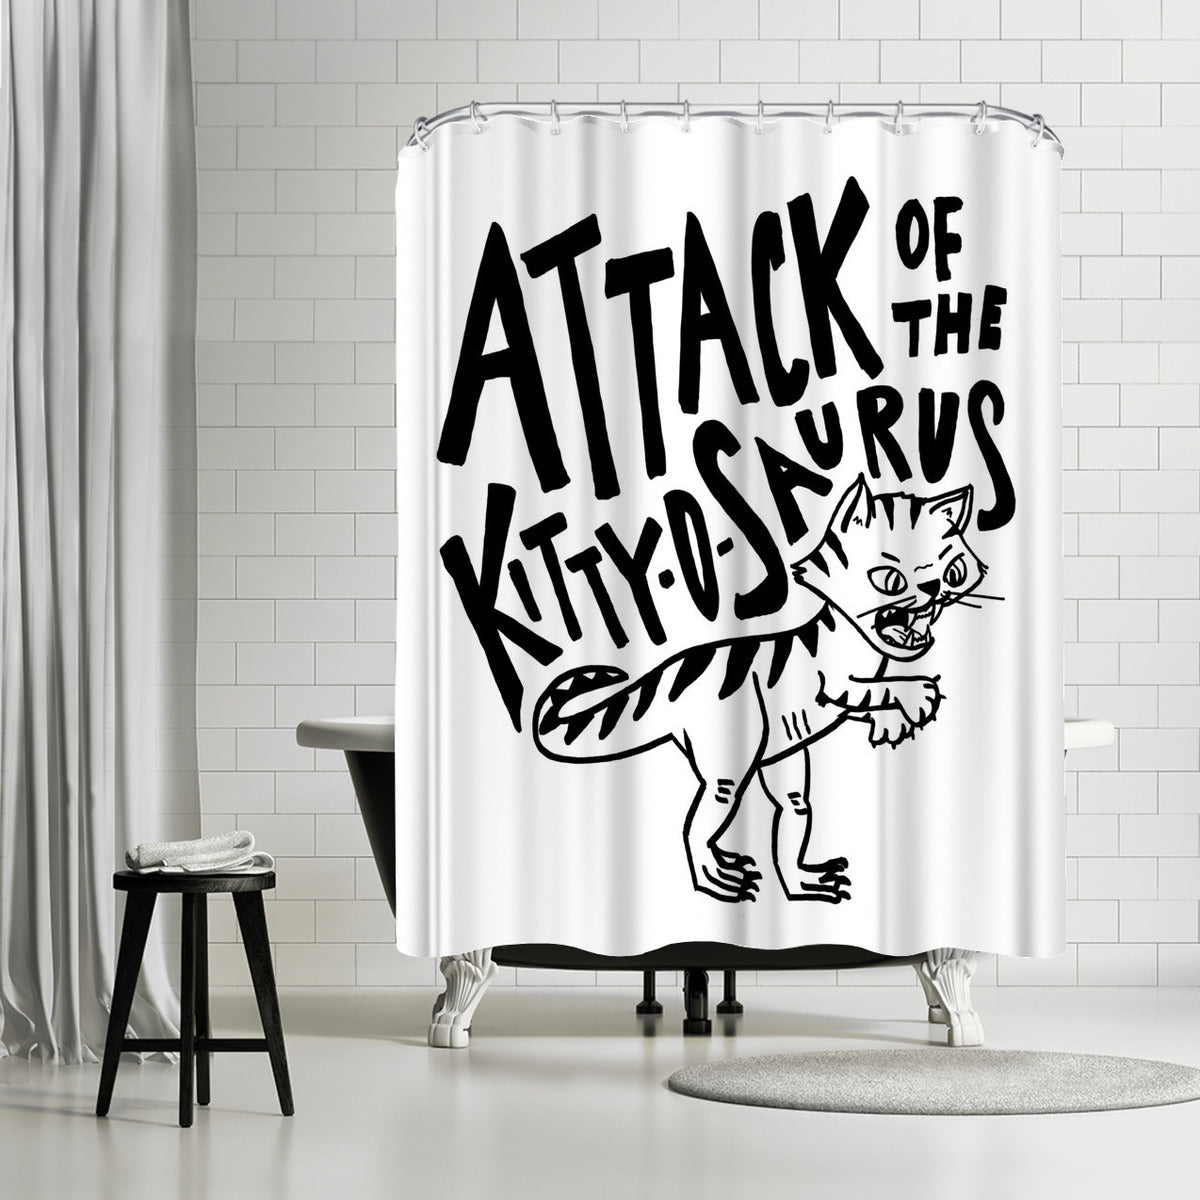 Kitty O Saurus by Leah Flores Shower Curtain